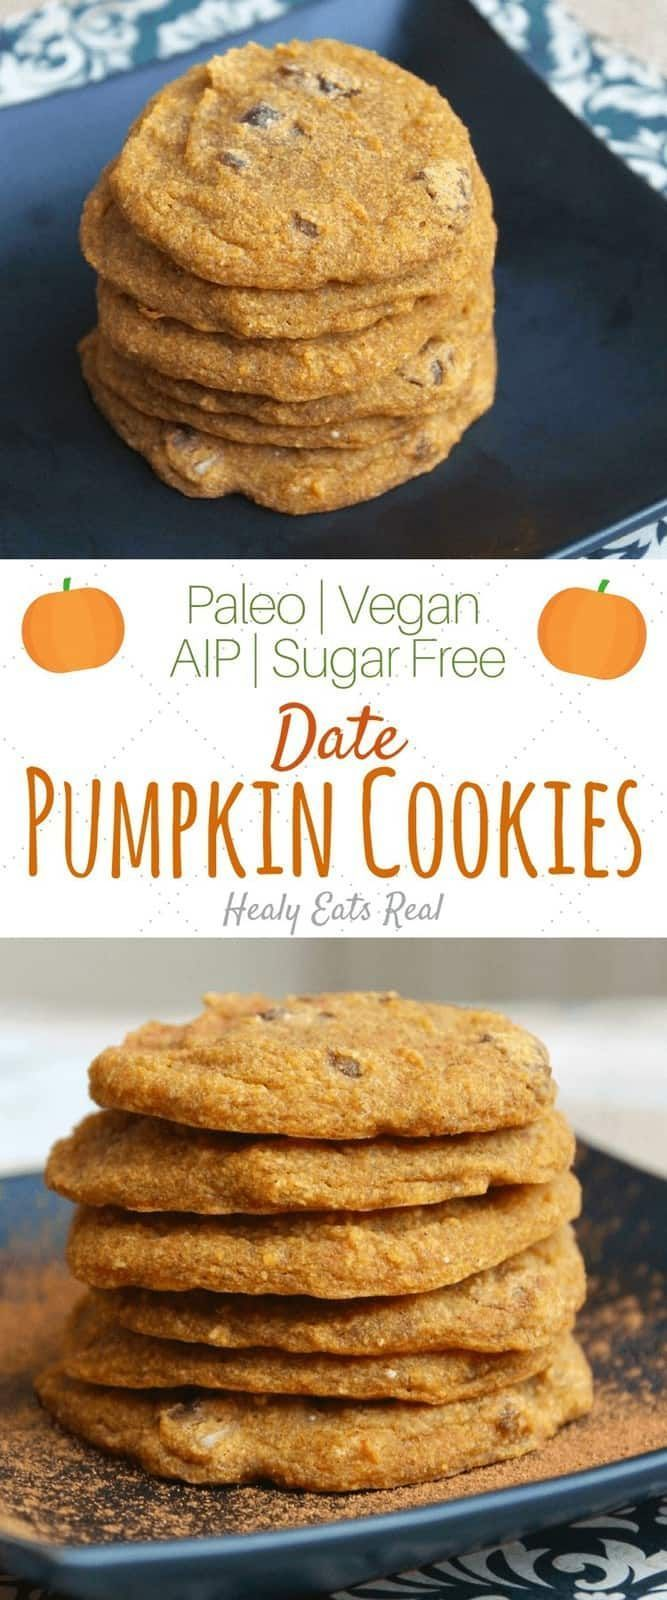 Healthy Date Pumpkin Cookies Recipe (Paleo, AIP, Vegan, Sugar Free)- These healthy date pumpkin cookies are the best easy fall recipe! They're paleo, AIP, vegan, gluten free, dairy free and sugar free, so enjoy them without worrying about unhealthy ingredients! If you are on a special diet like the autoimmune paleo protocol (AIP), these are free of eggs too! #AIP #banana #cookies #healthy #paleo #pumpkin #special diet #vegan